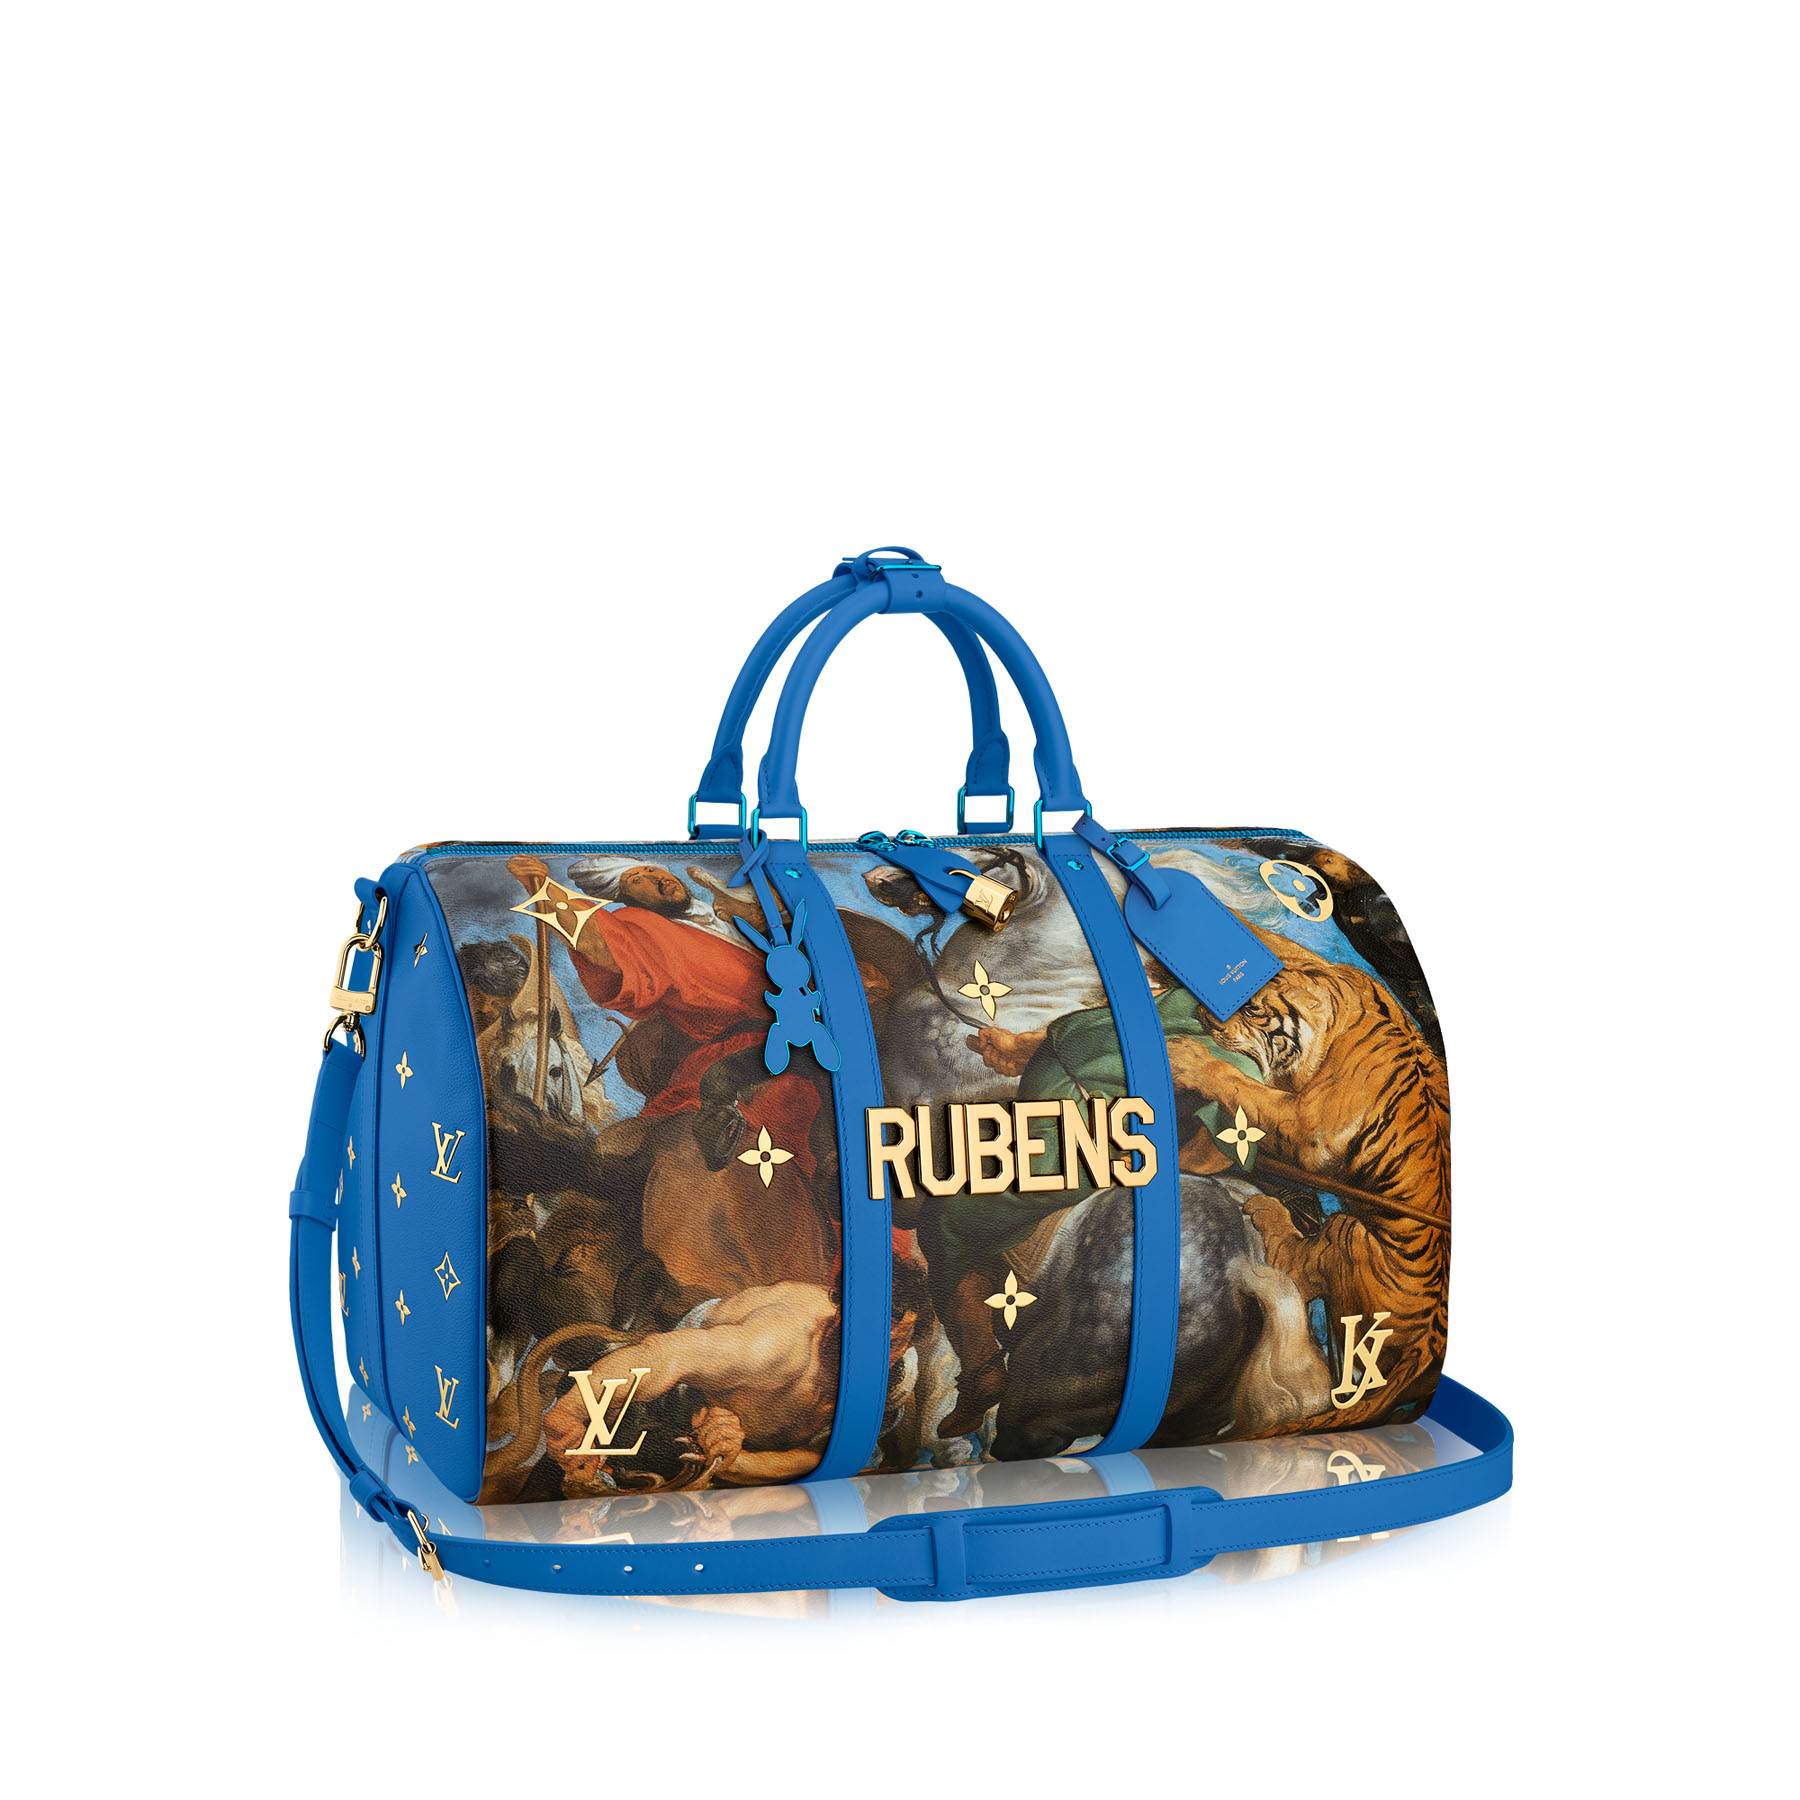 Louis-Vuitton-Jeff-Koons-Collaboration-the-impression-09